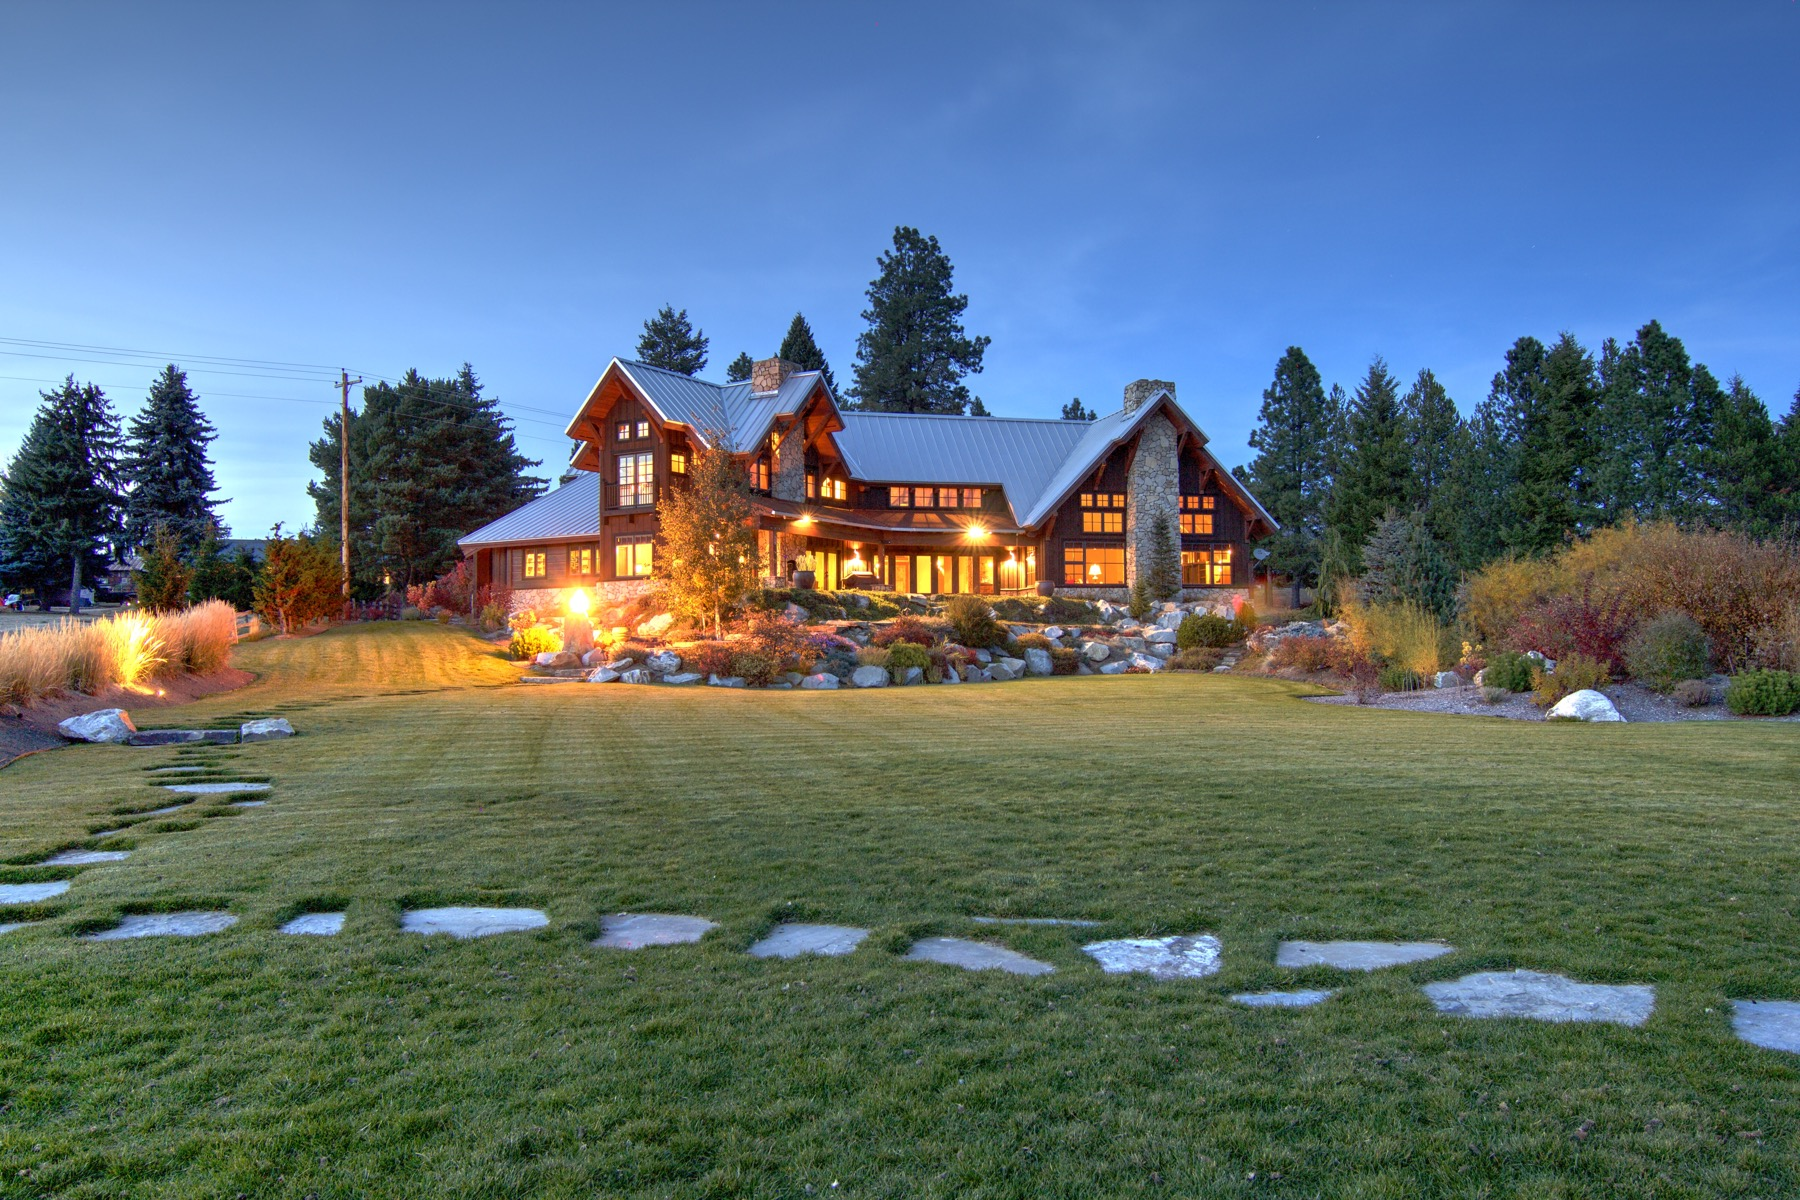 Single Family Homes for Sale at Majestic Waterfront Estate 190 Campbell Homestd Laclede, Idaho 83841 United States